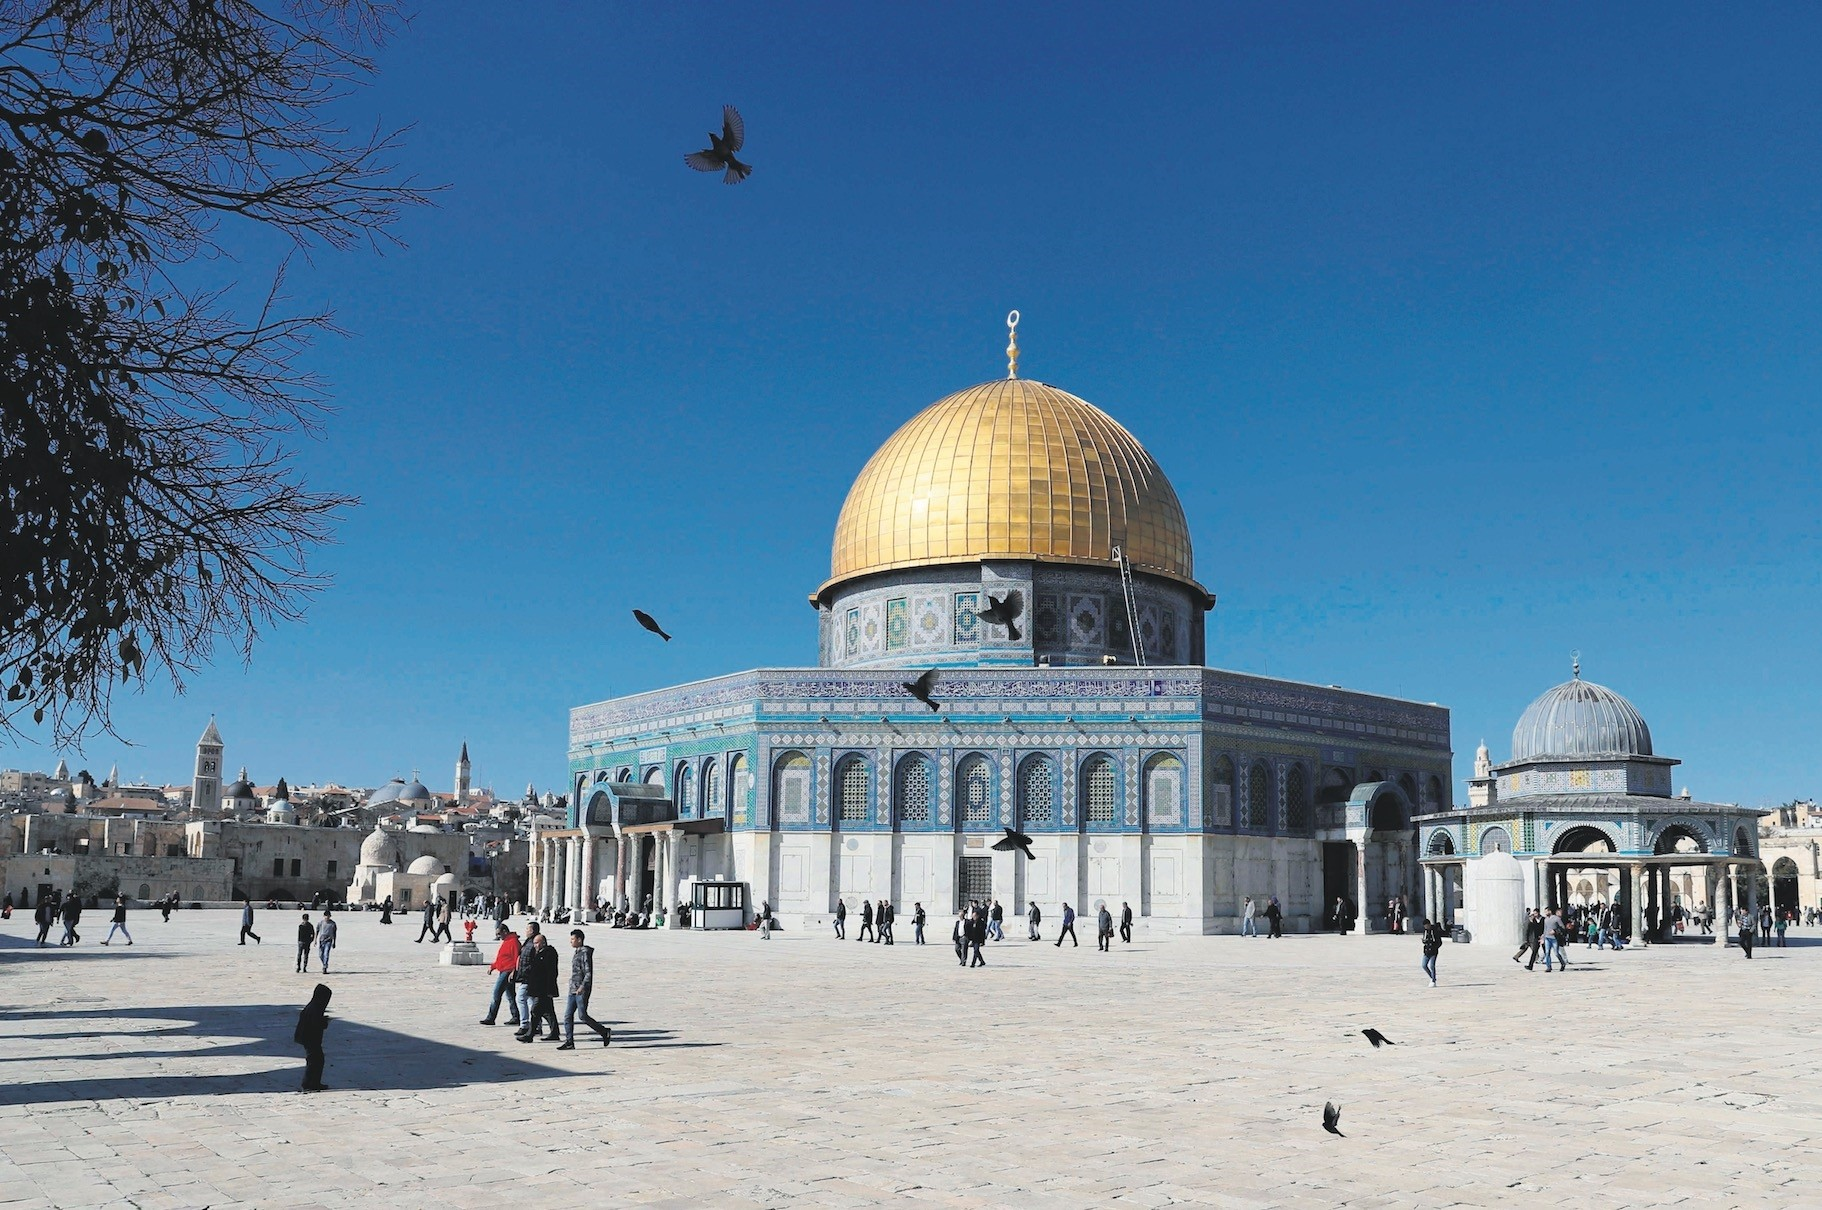 Palestinian Muslim worshippers walk past the Dome of the Rock at the Al-Aqsa Mosque compound in Jerusalemu2019s Old City after U.S. President Trumpu2019s decision to recognize Jerusalem as the capital of Israel.